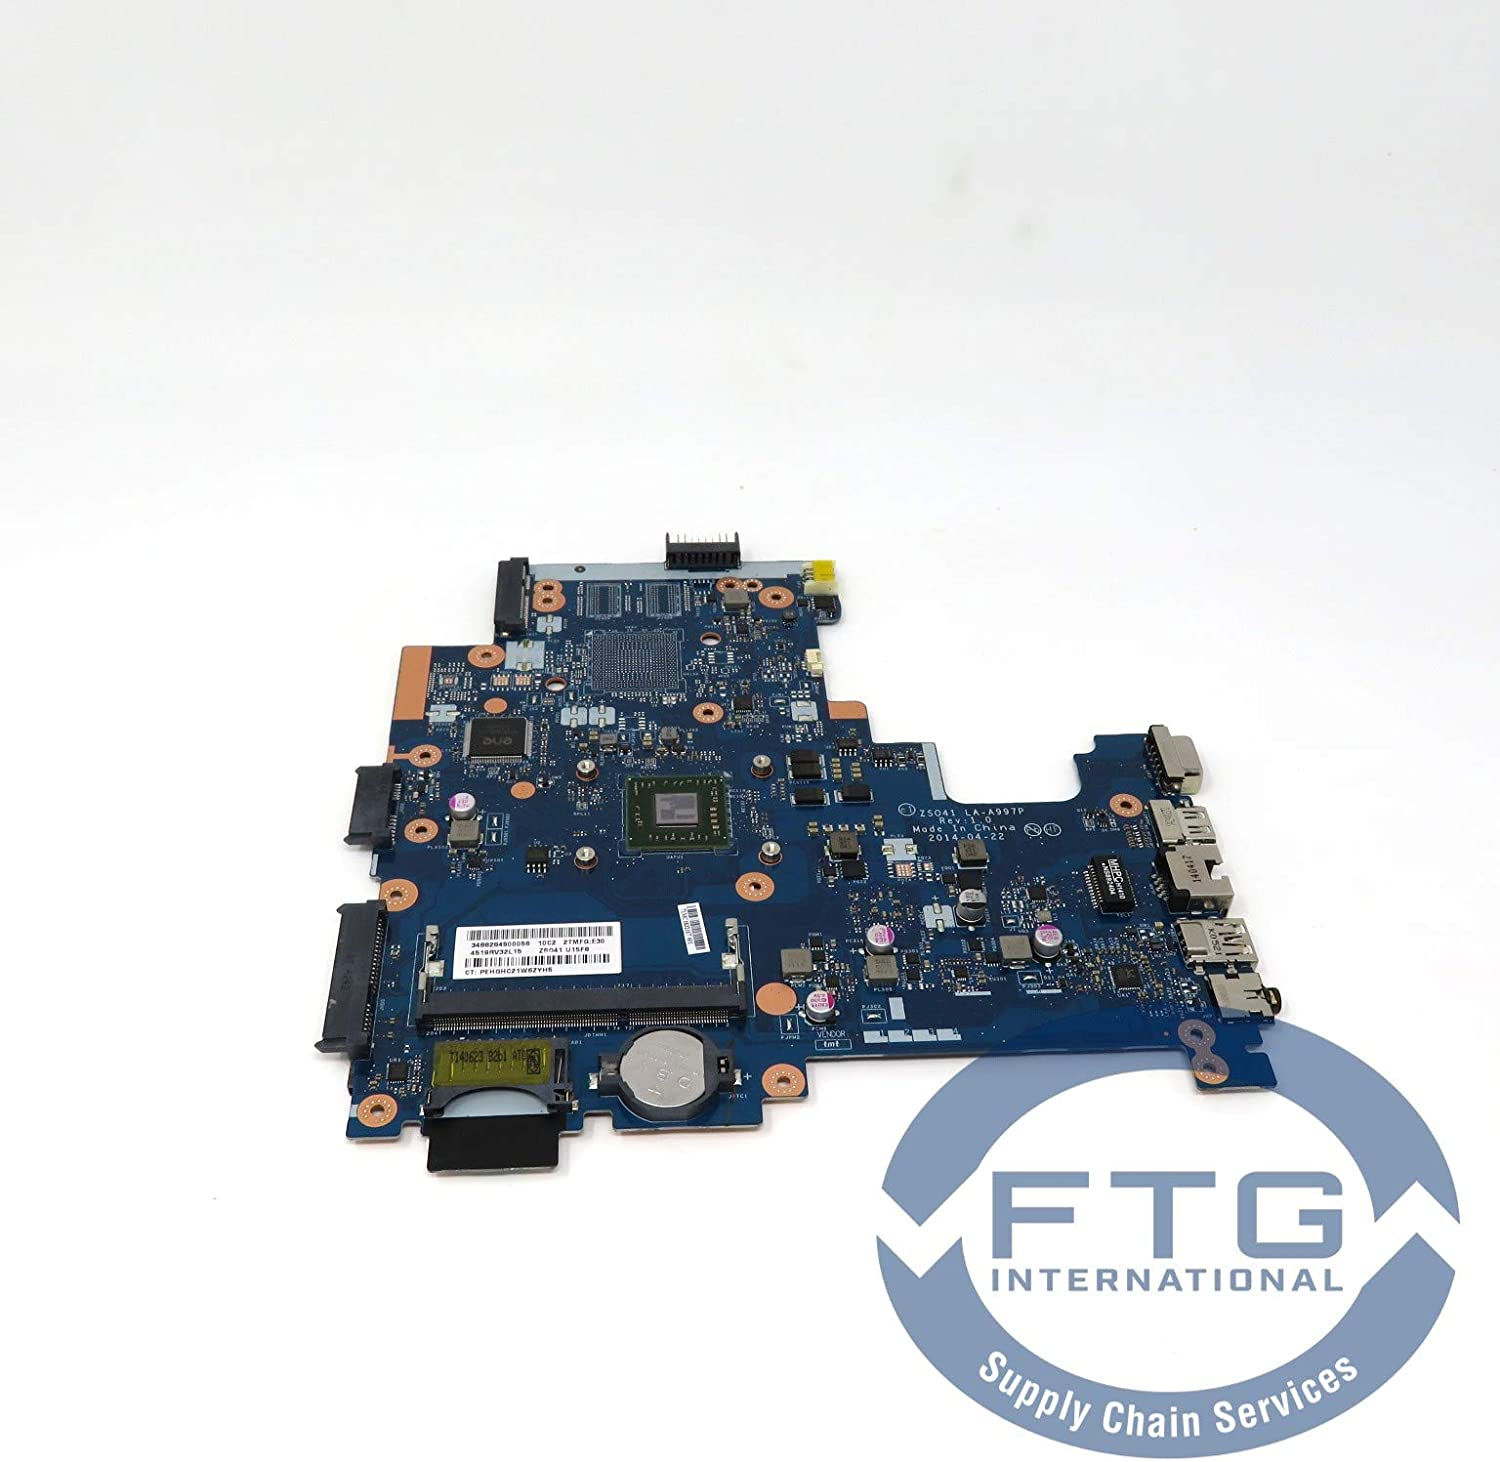 Motherboard Includes an AMD A8-6410 Qua 764170-601//765119-601 System Board